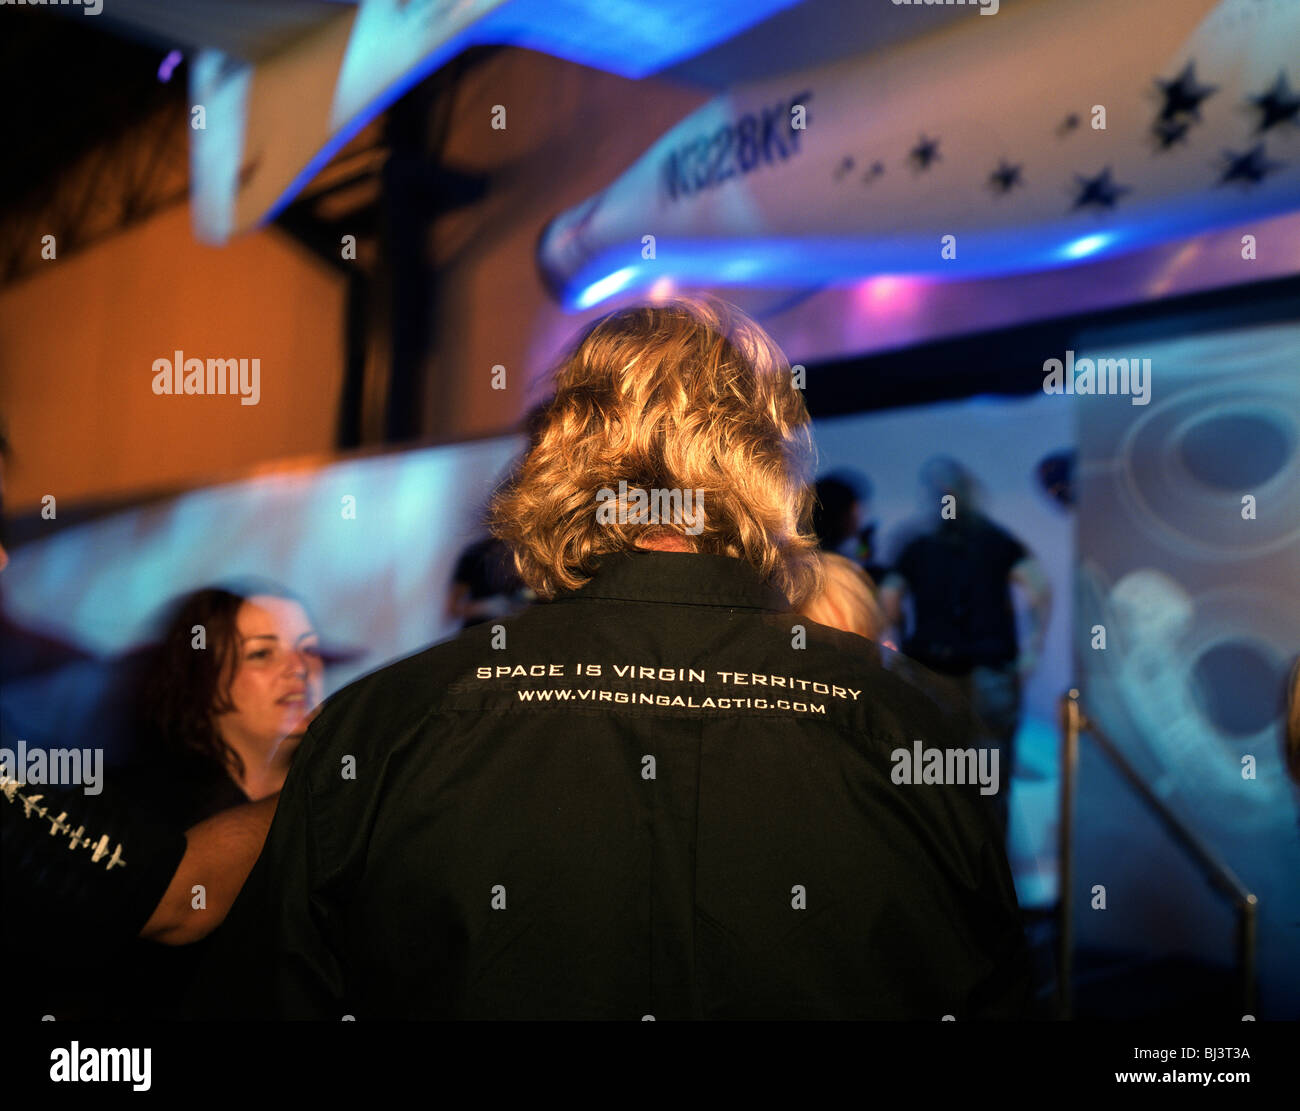 The back of greying-blonde head belonging to Sir Richard Branson of Virgin Galactic during SpaceShipTwo's replica - Stock Image